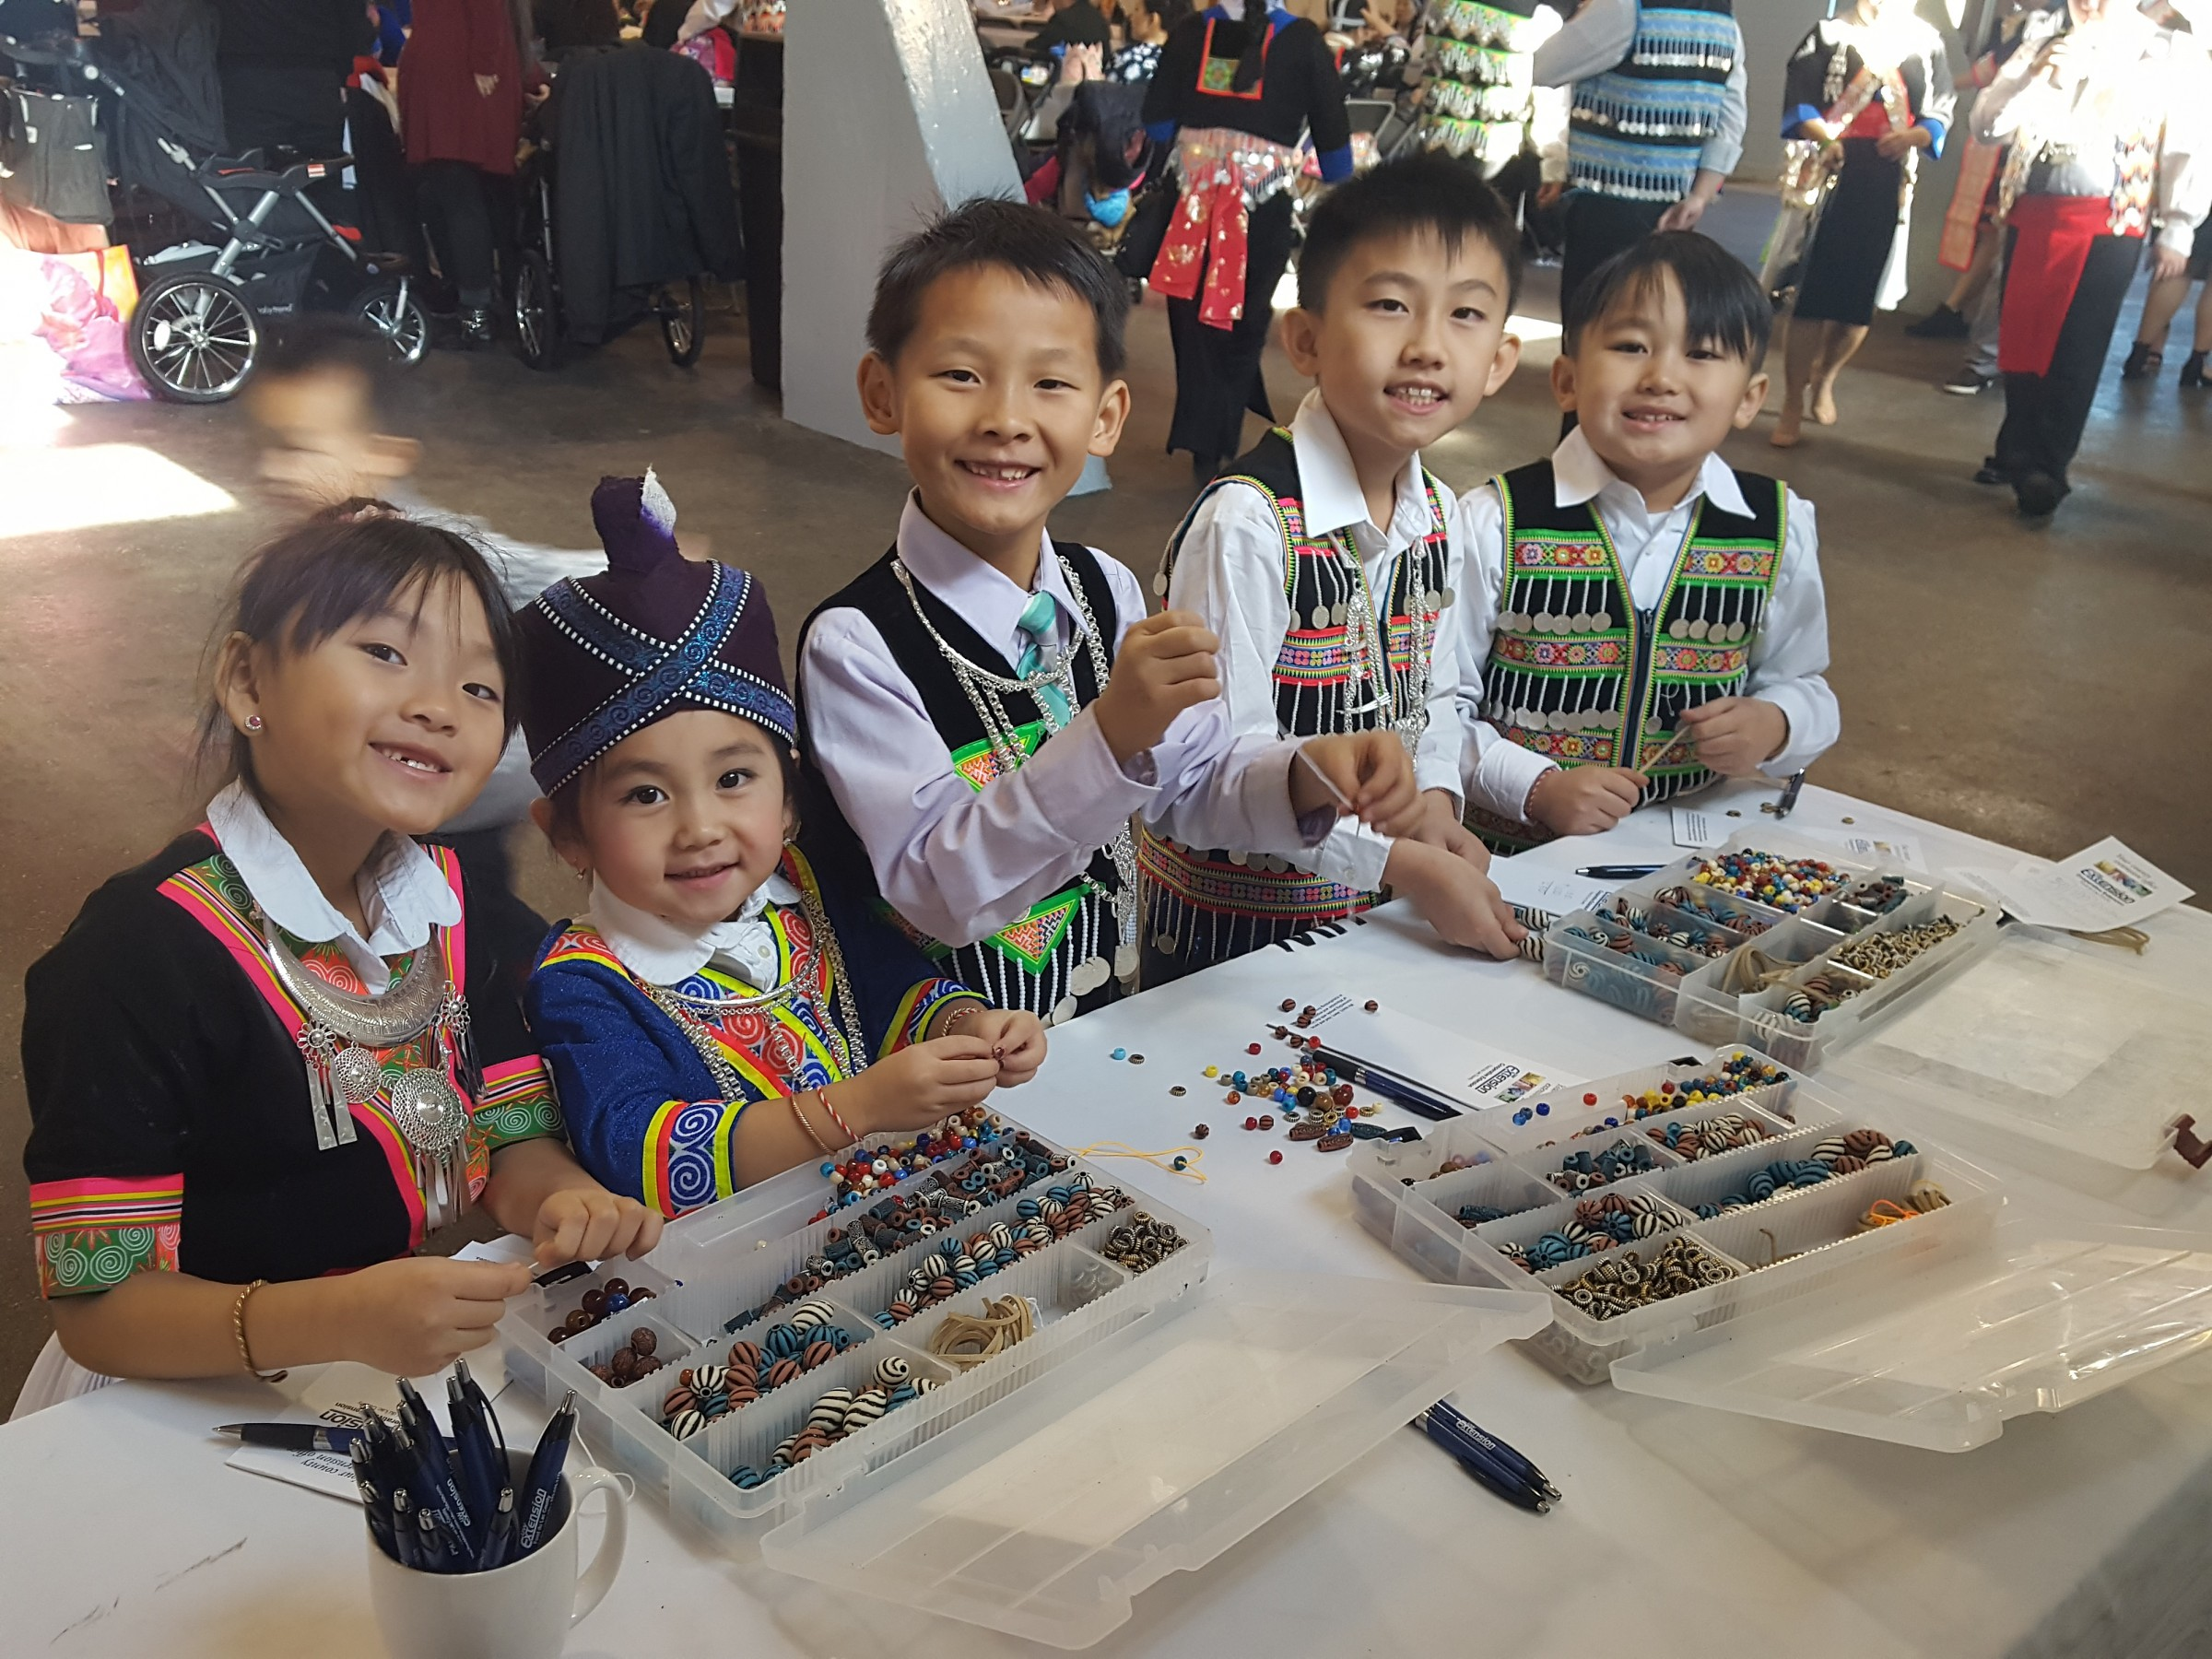 Celebrating the Hmong New Year – Fond du Lac County